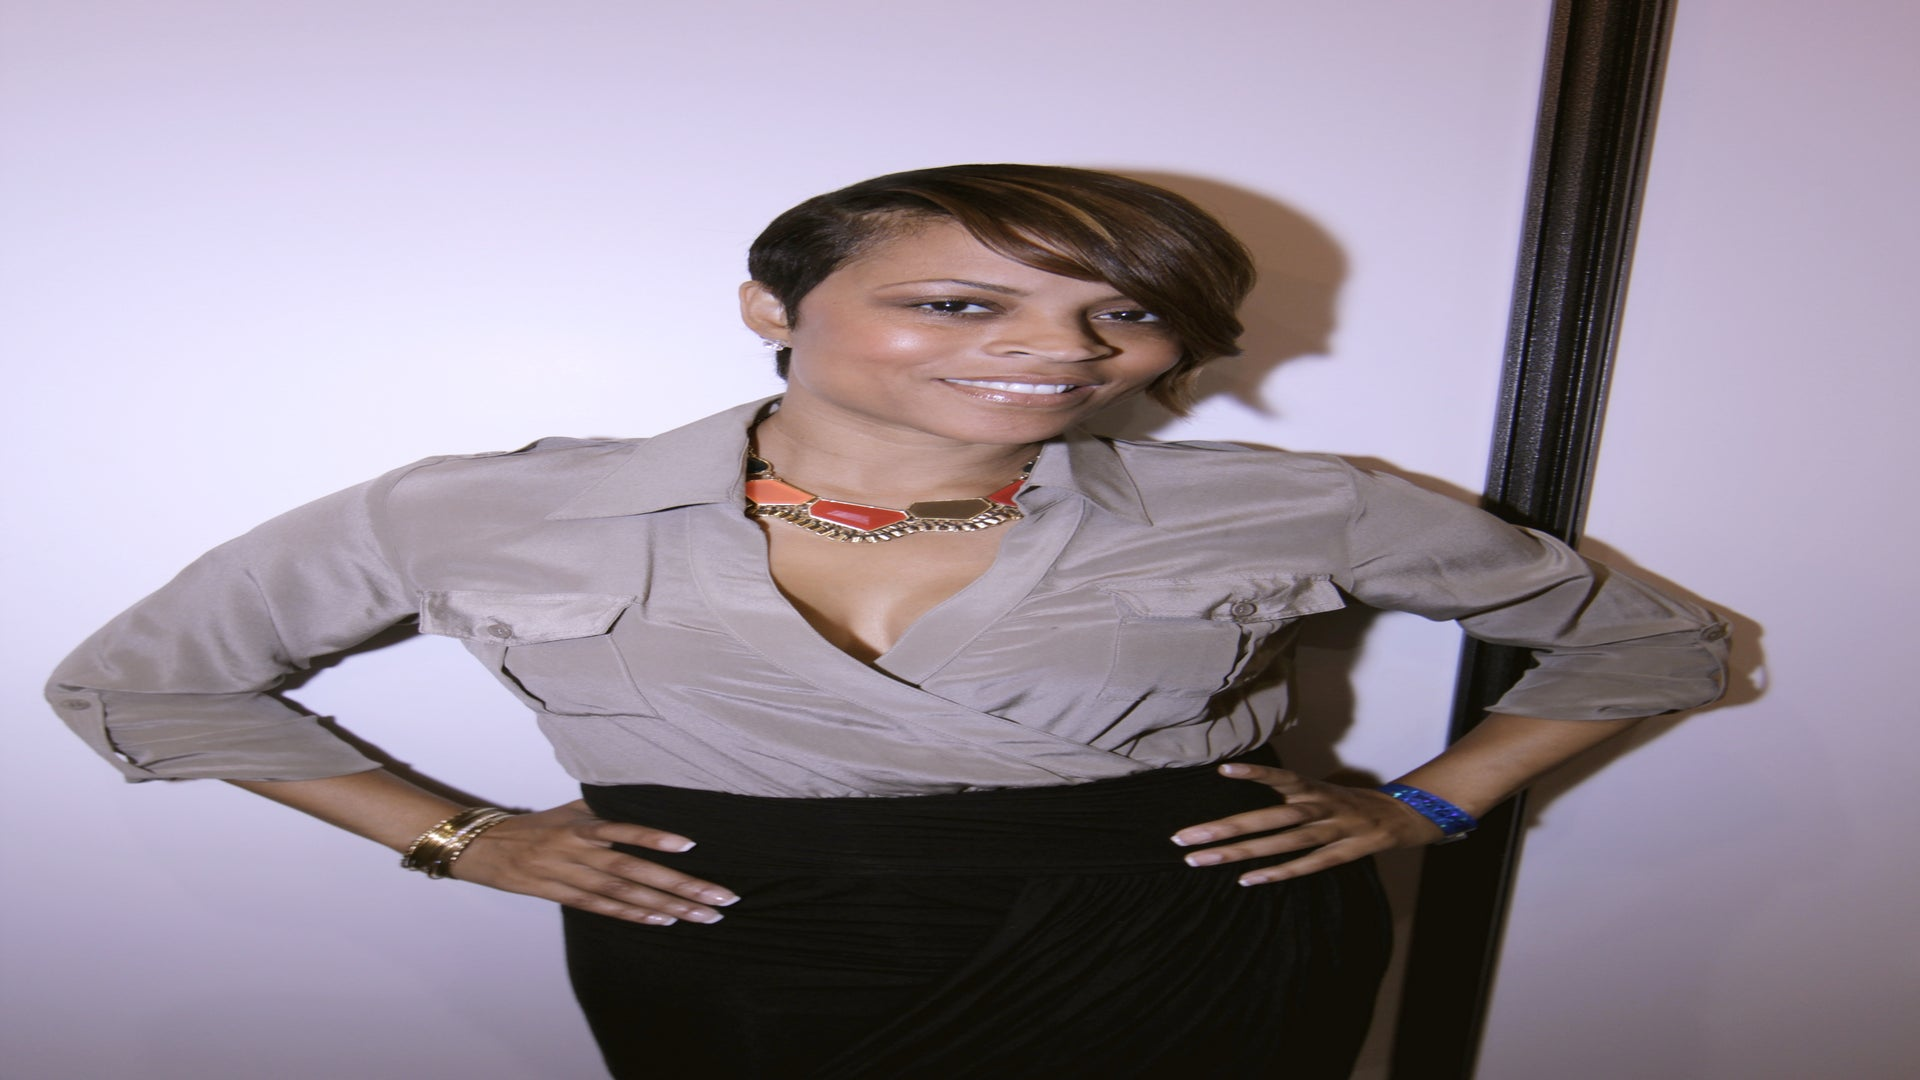 Shaunie Sets The Record Straight On 'Basketball Wives' Relevancy